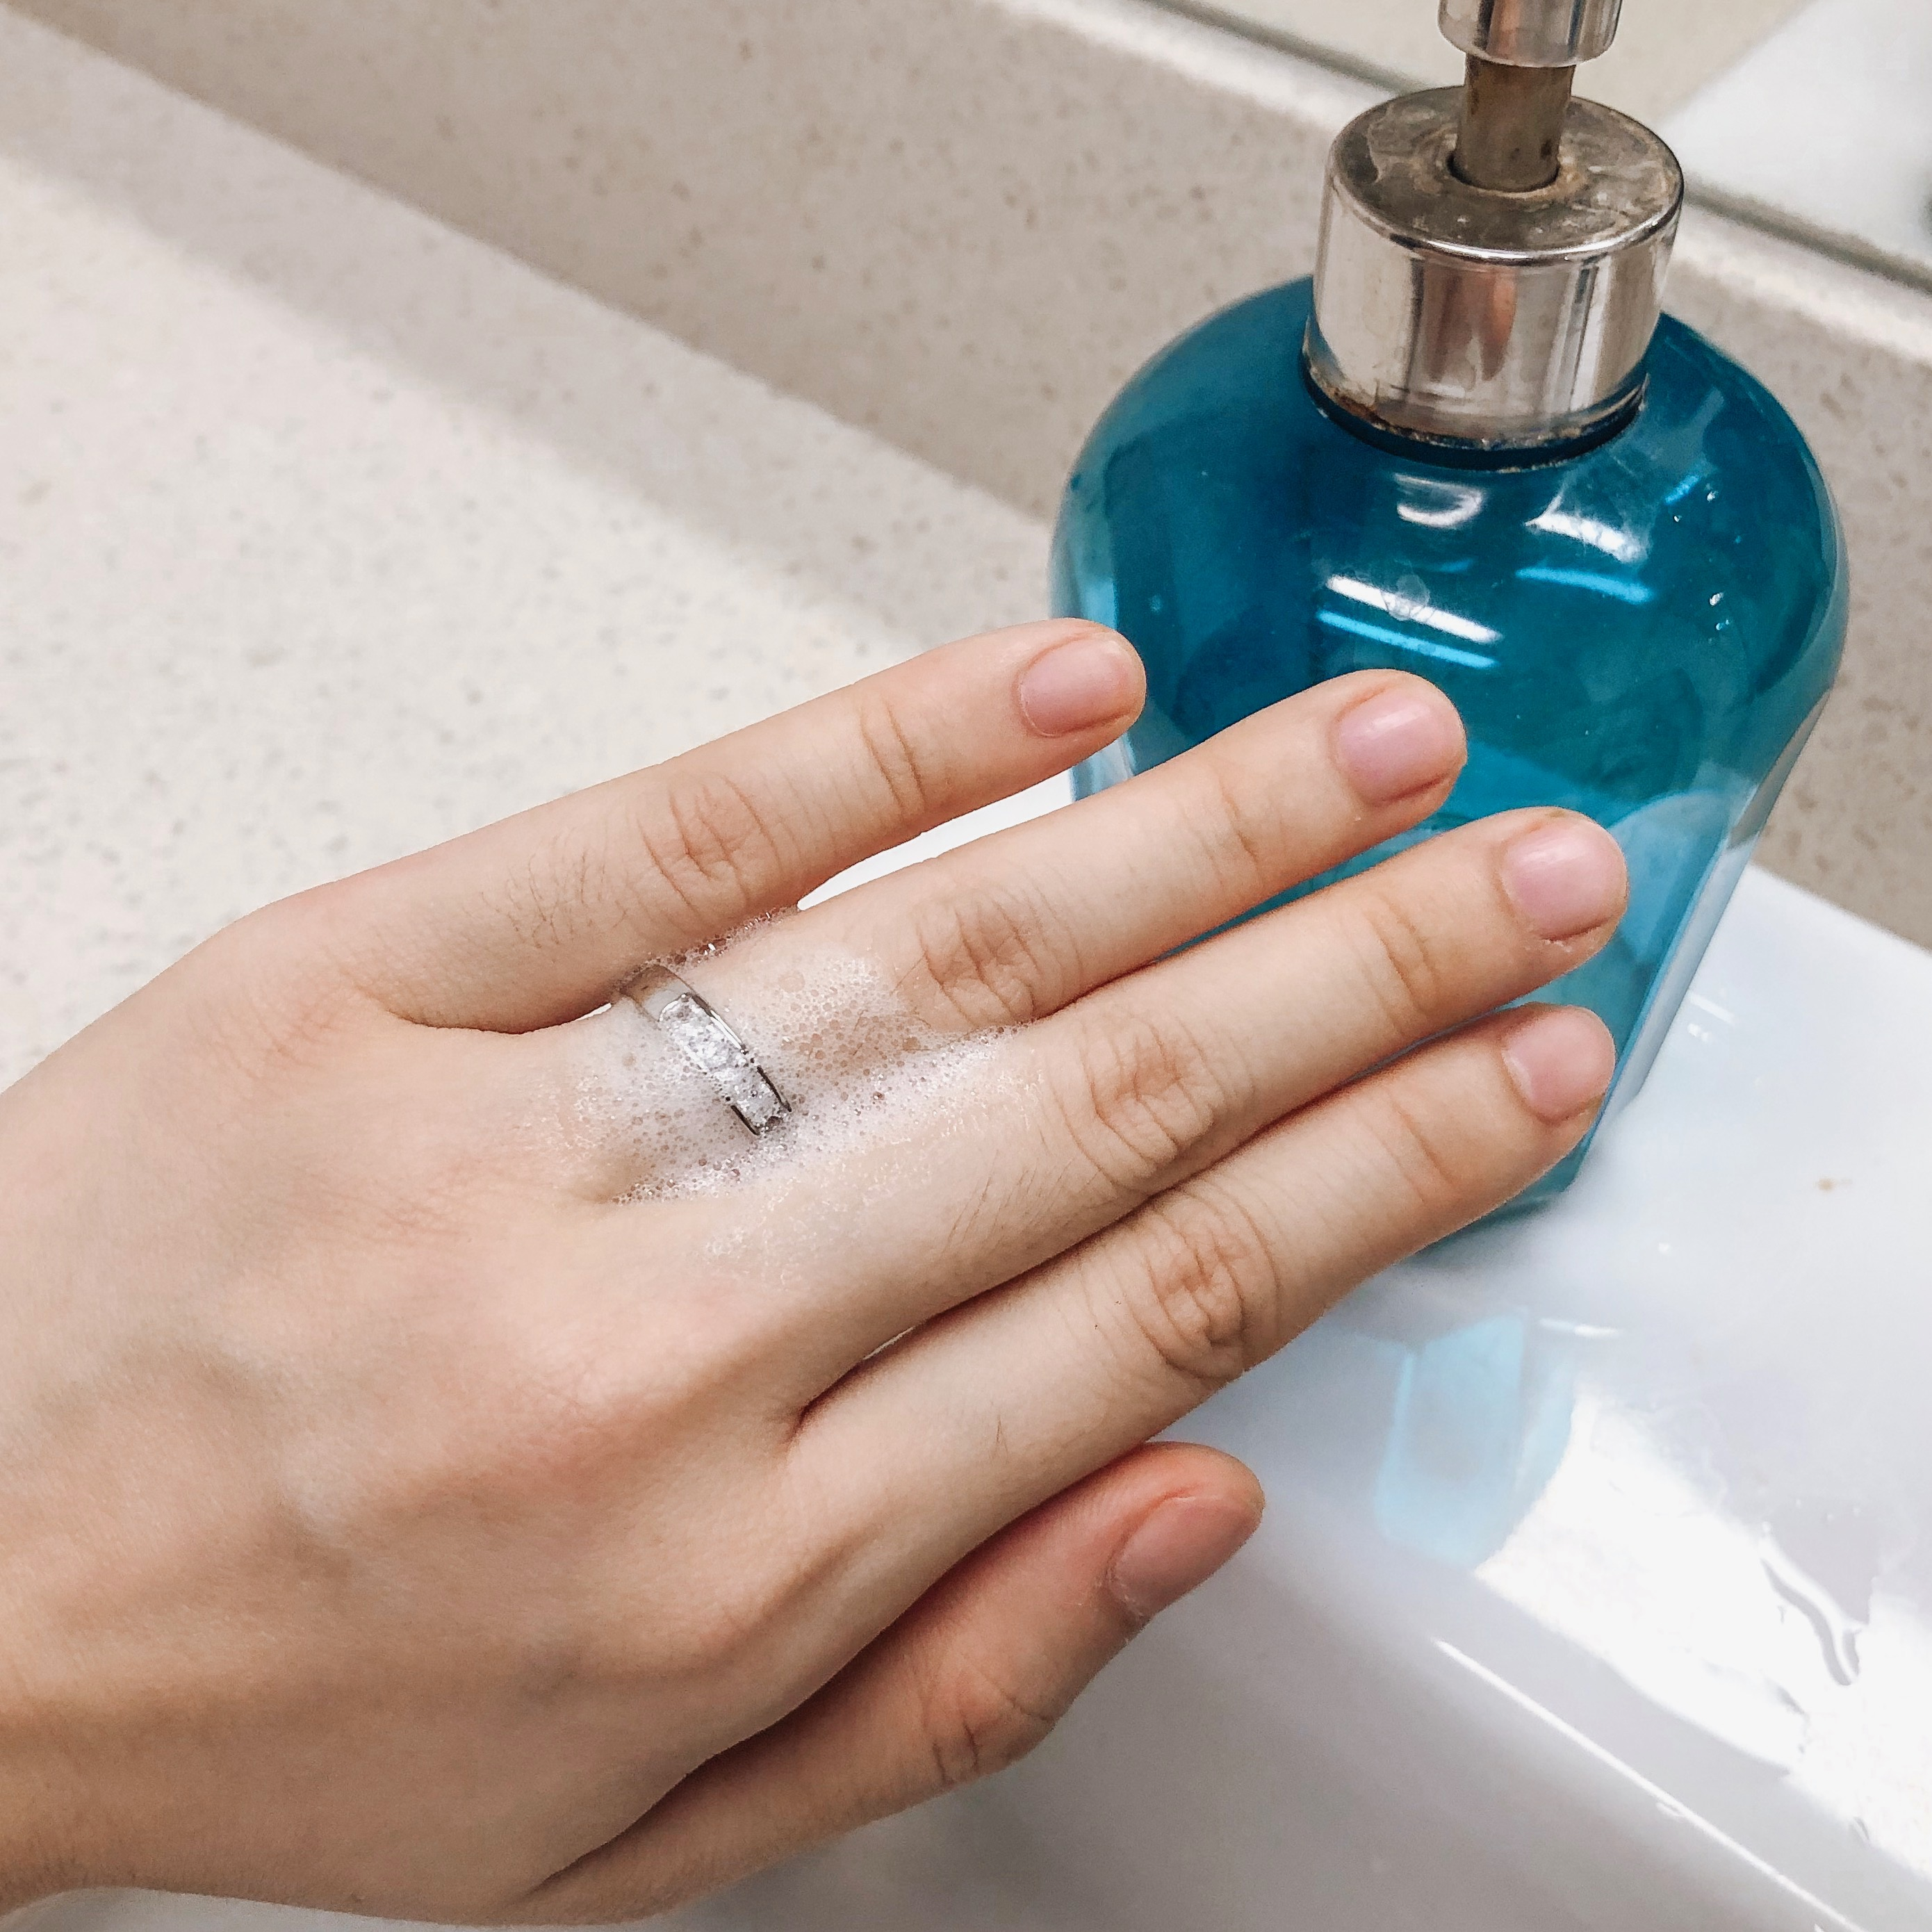 soap and water to remove stuck ring